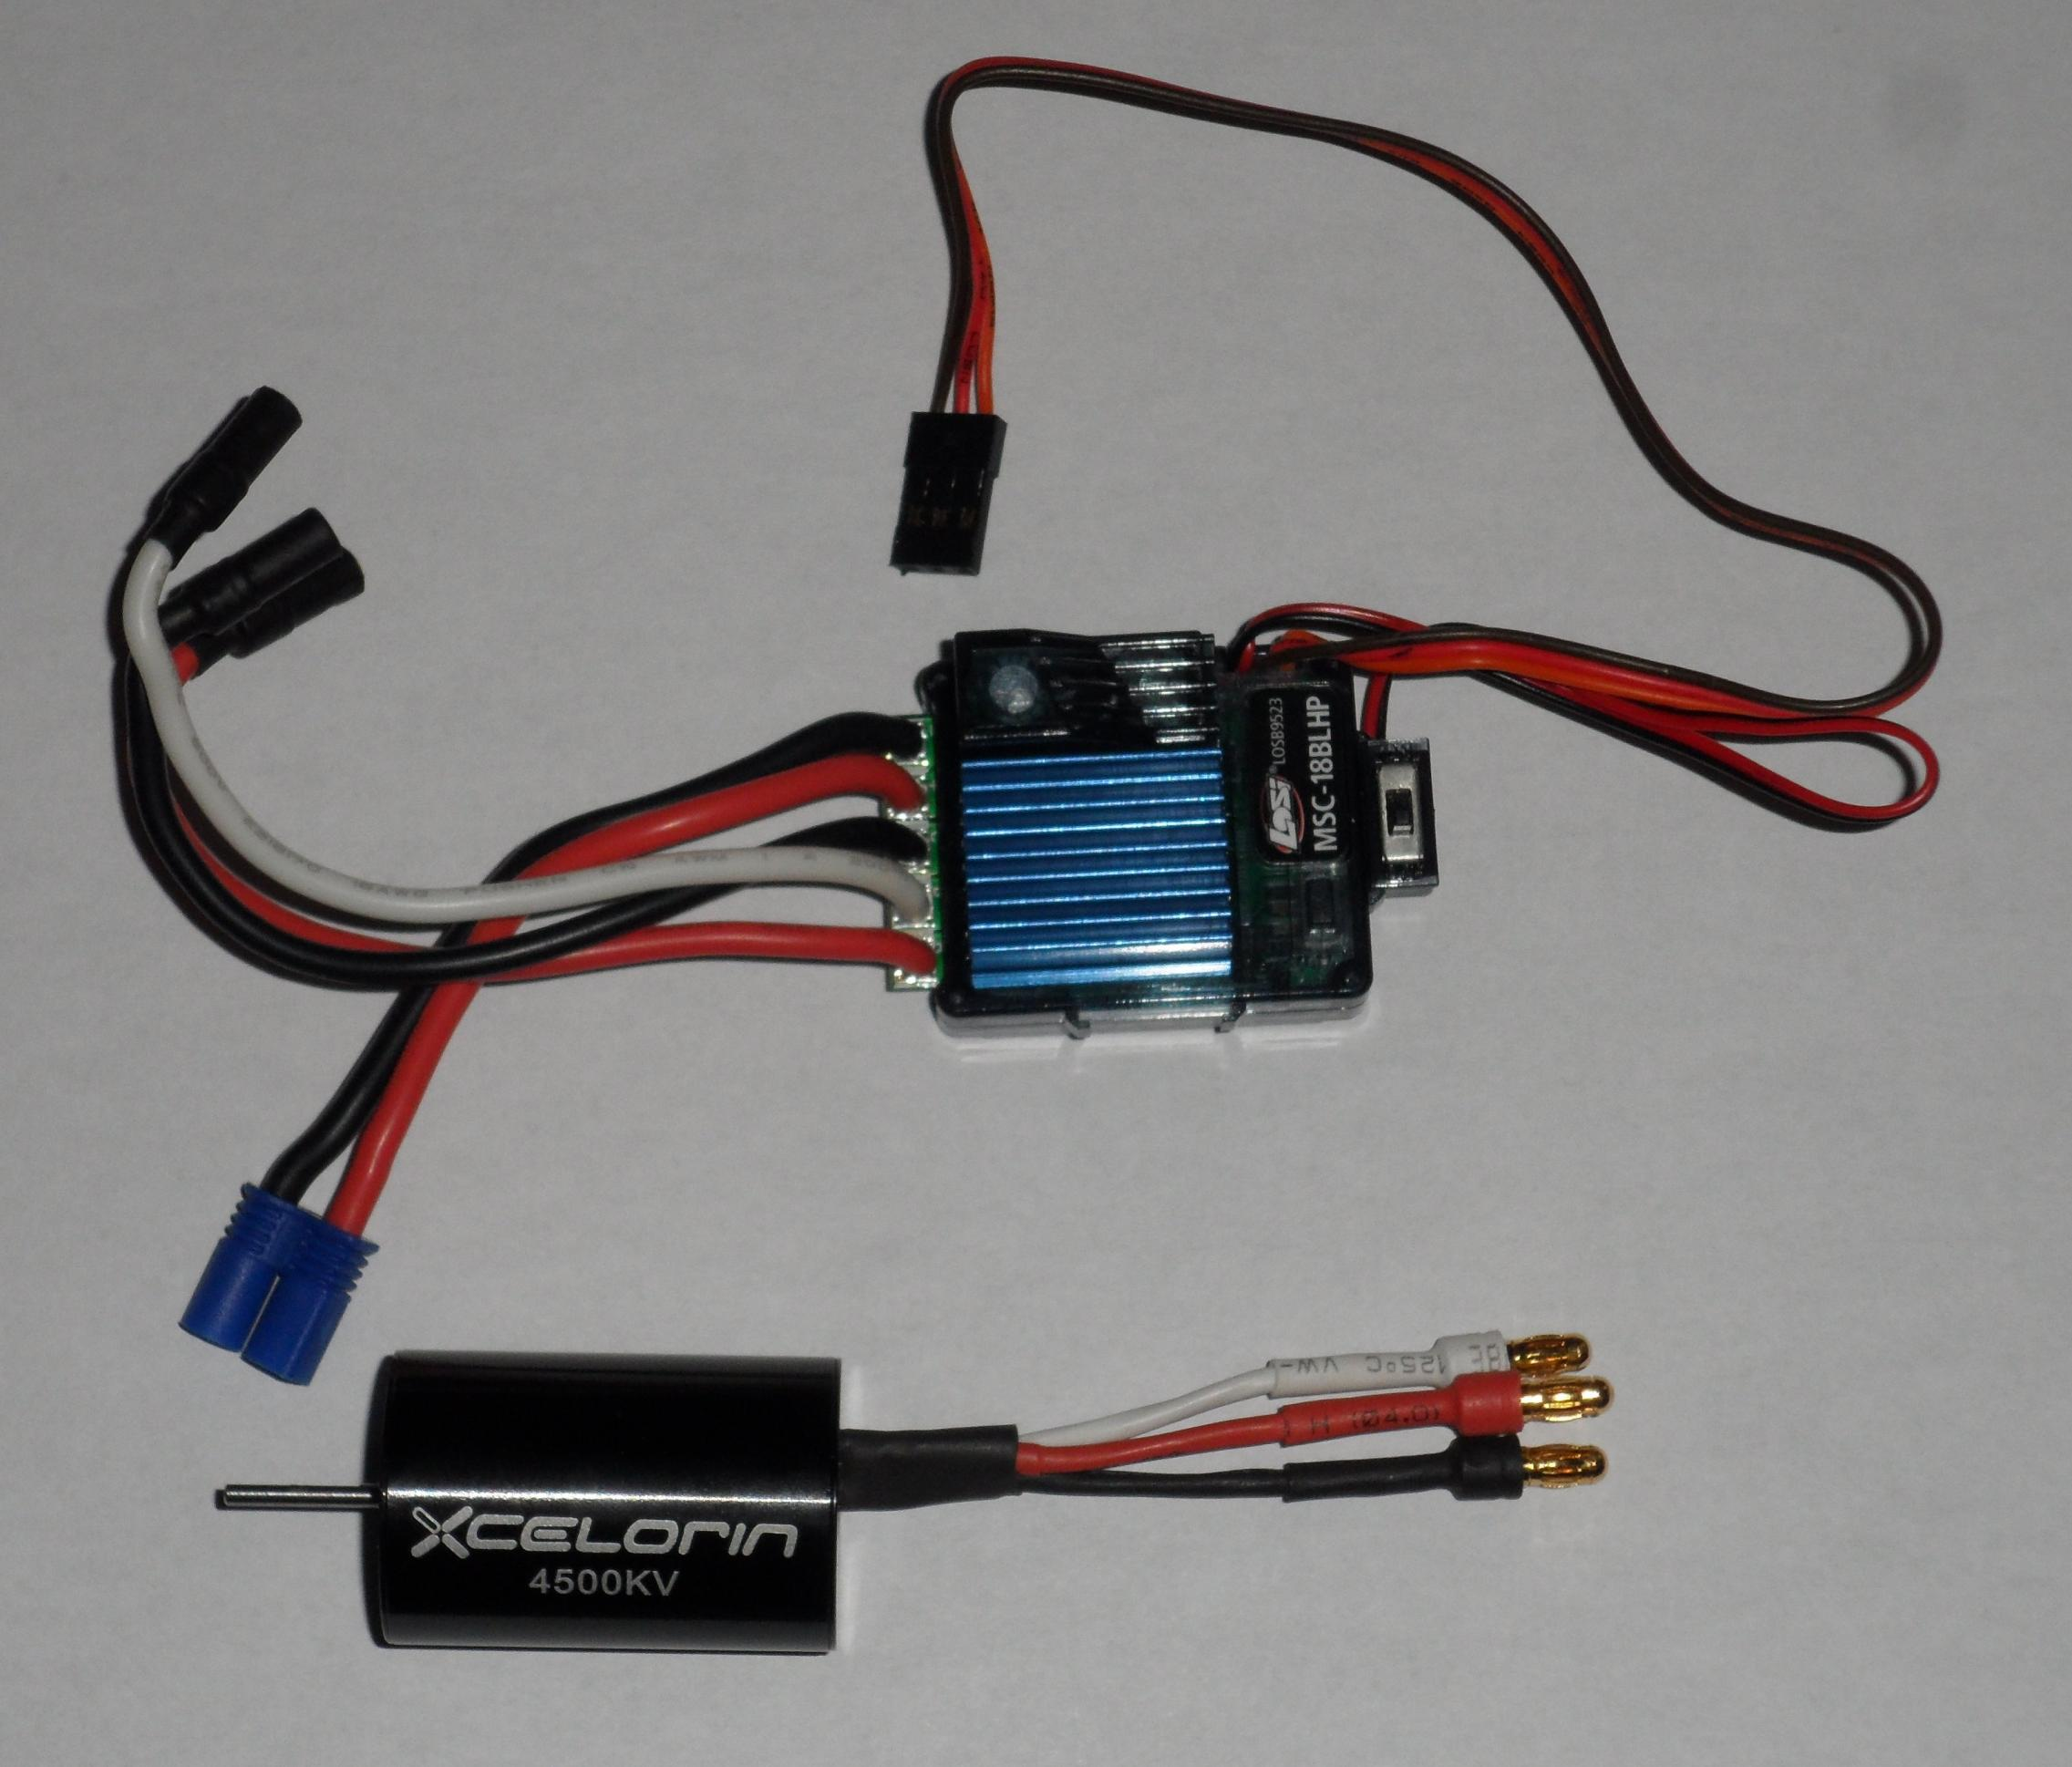 Electronic Speed Controls Auroraiiitd Brushless Esc Wiring These Escs Have Two Output Signal Wires Rather Than Three Ac Phase In Dc The Broader Sense Are Pwm Controllers For Electric